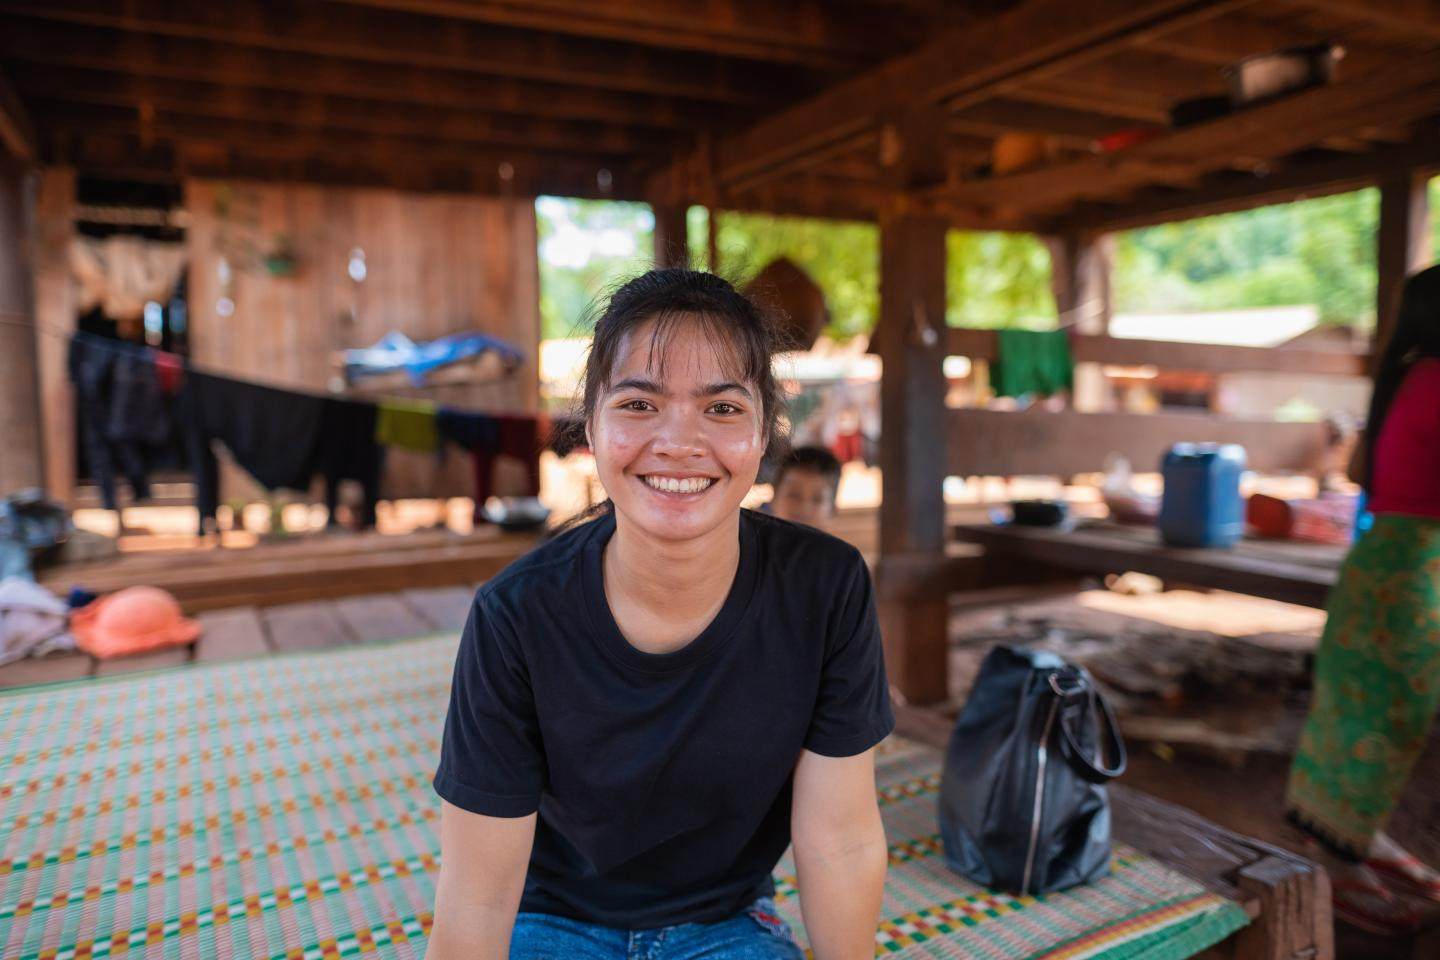 A girl's dream for her community | UNICEF Cambodia